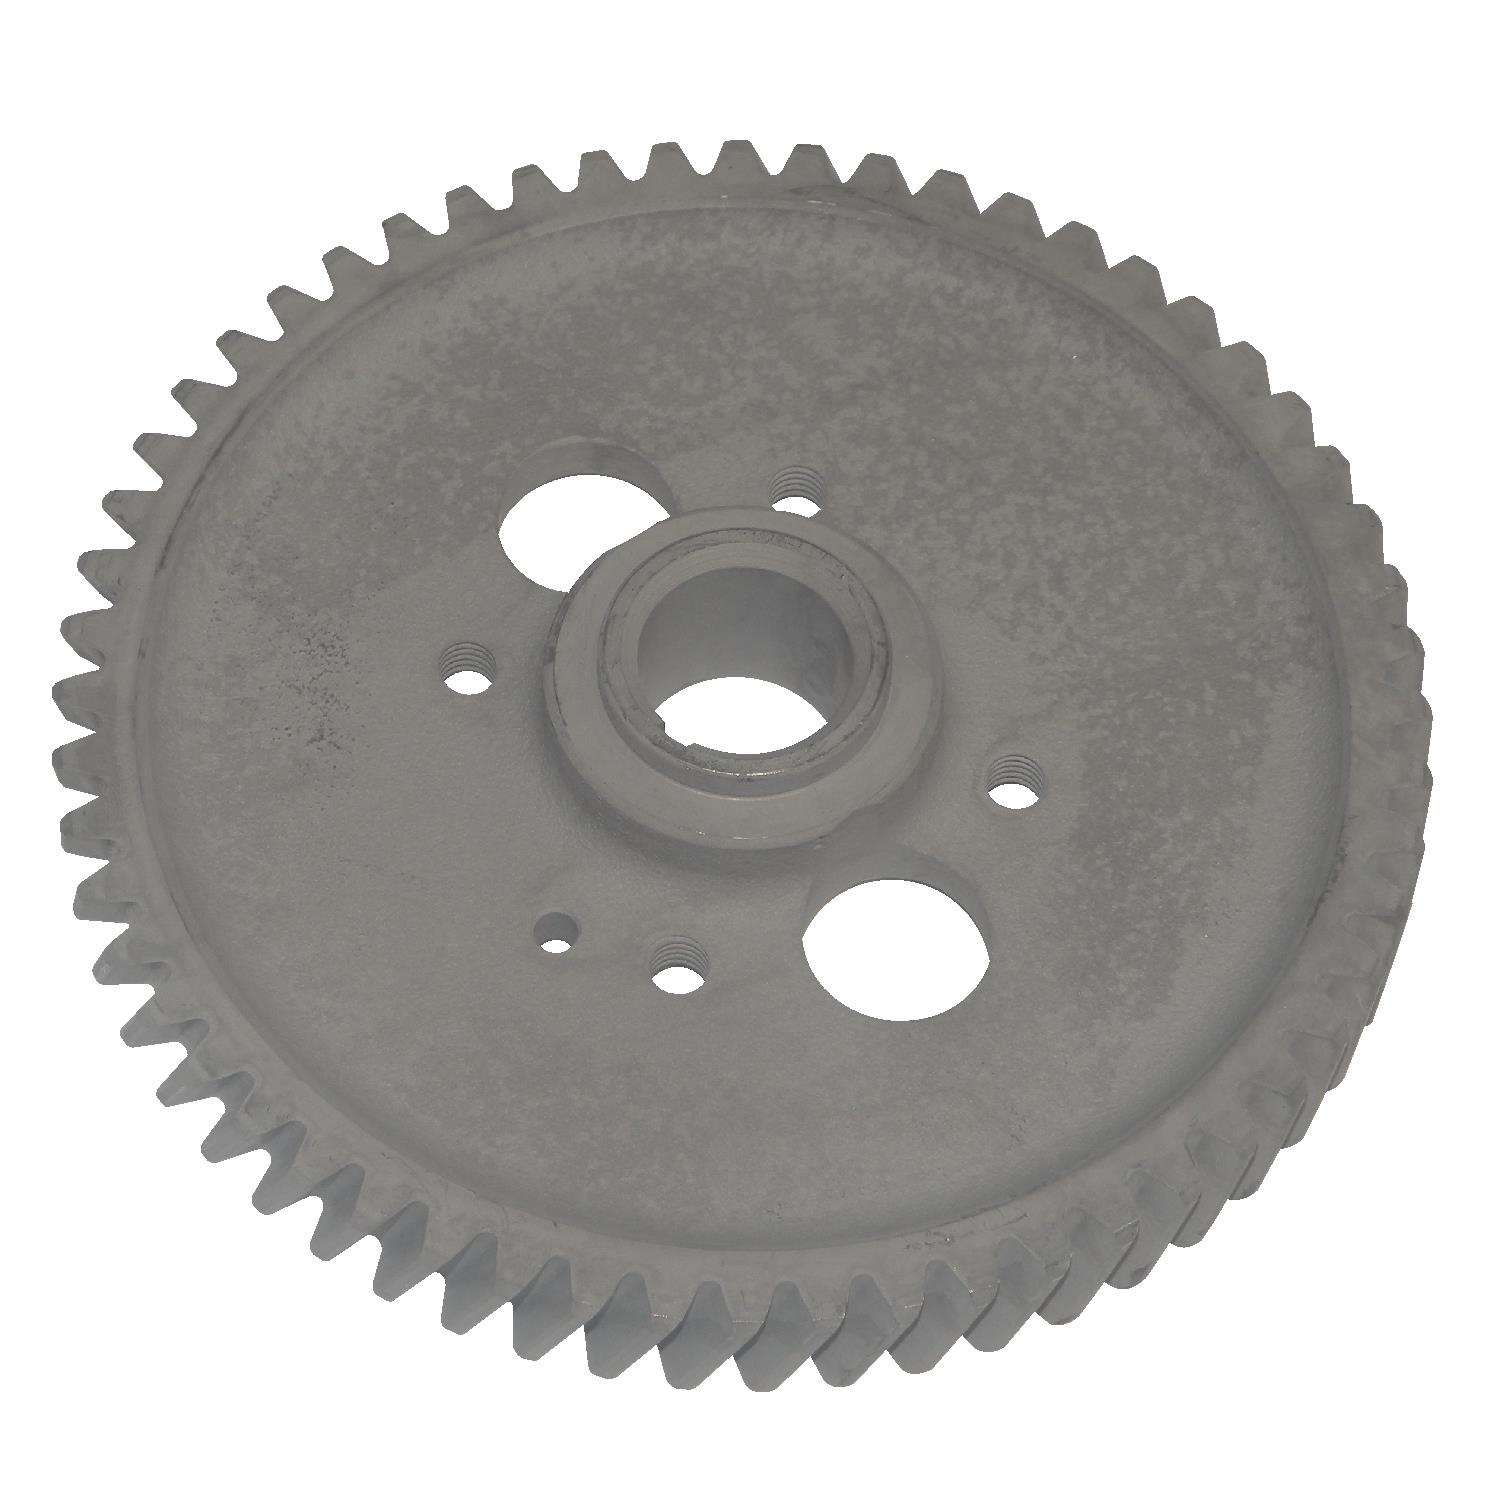 Engine Timing Camshaft Gear